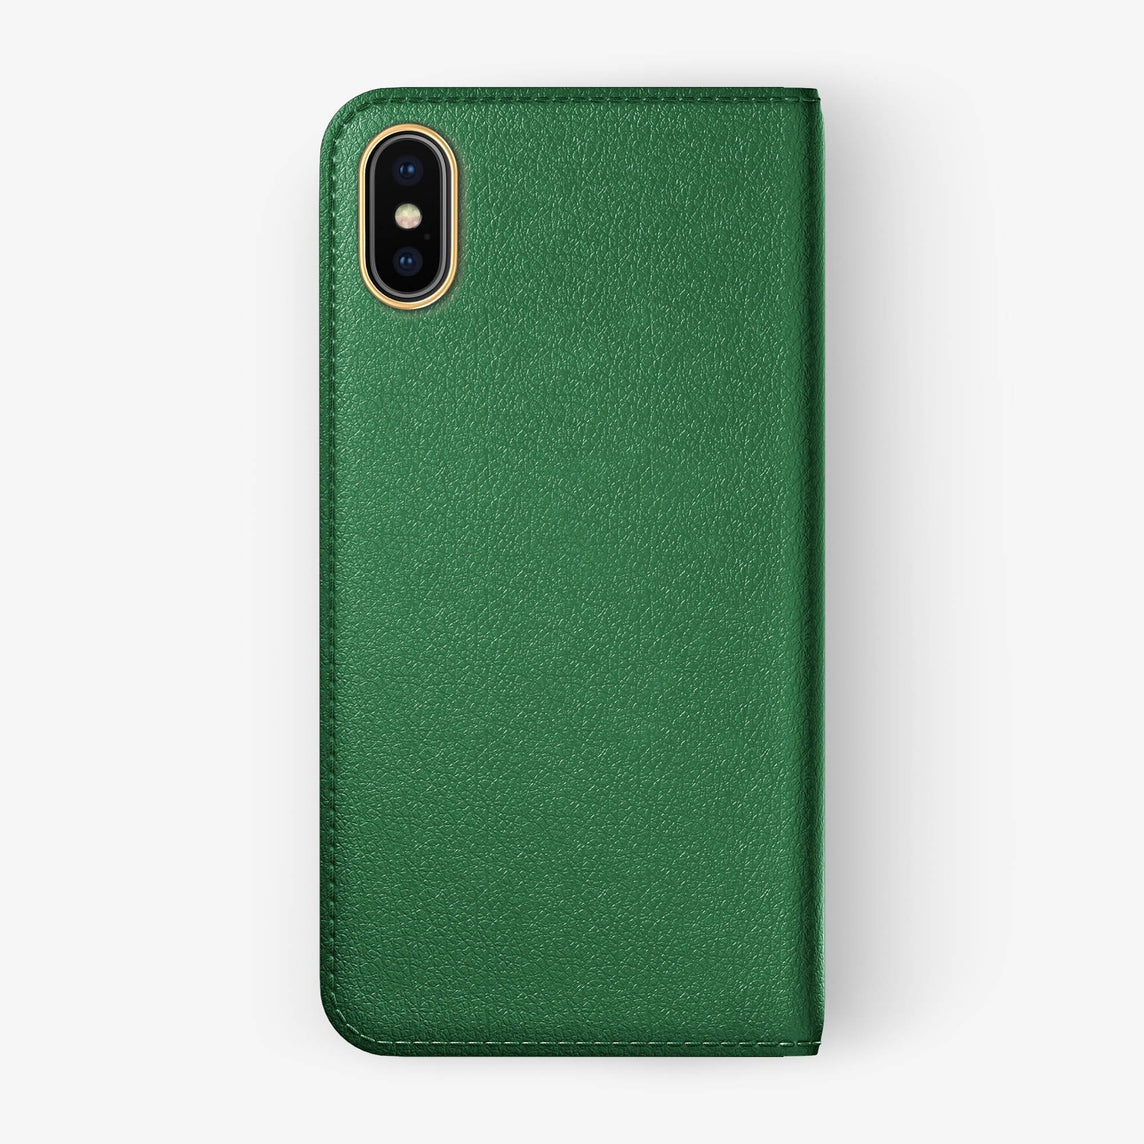 Green Calfskin iPhone Folio Case for iPhone X finishing yellow gold - Hadoro Luxury Cases - img5